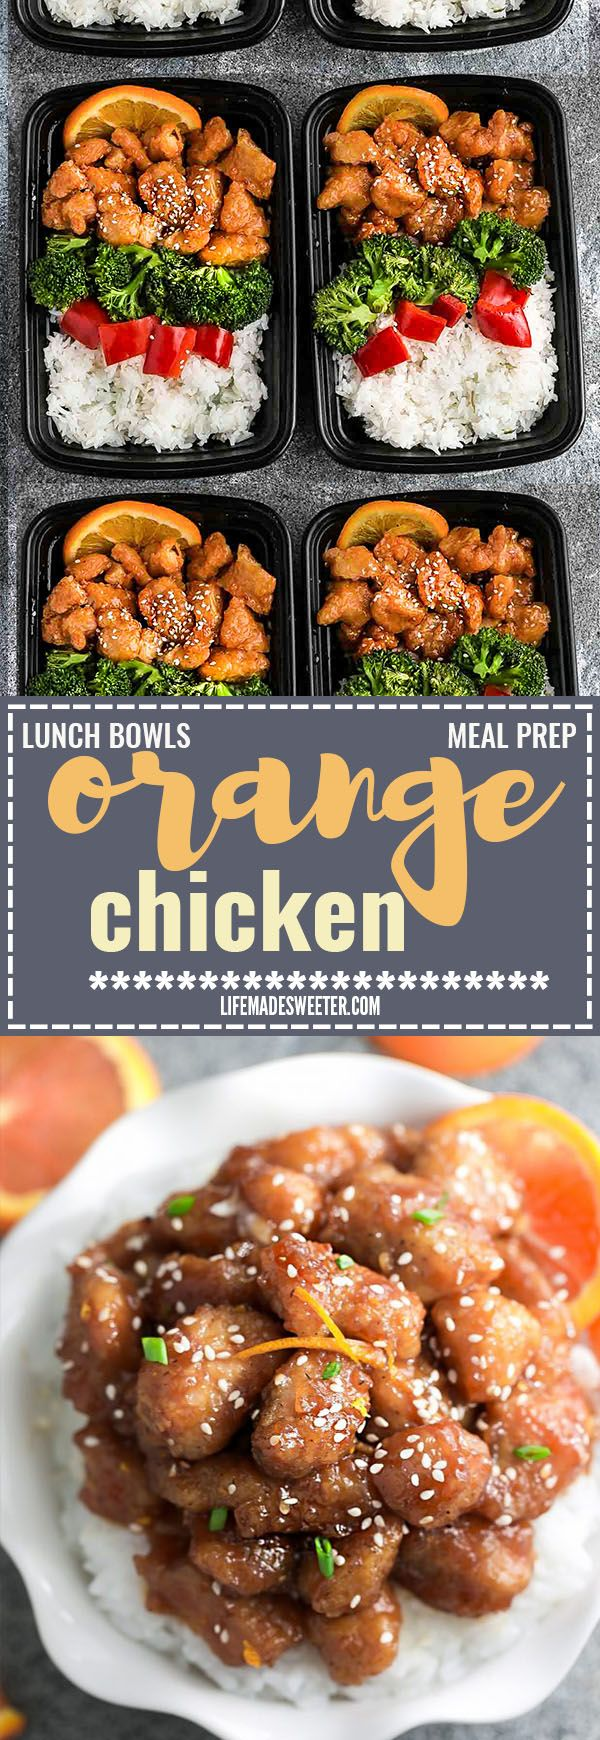 Slow Cooker Orange Chicken (+ Instant Pot) + Meal Prep + Video